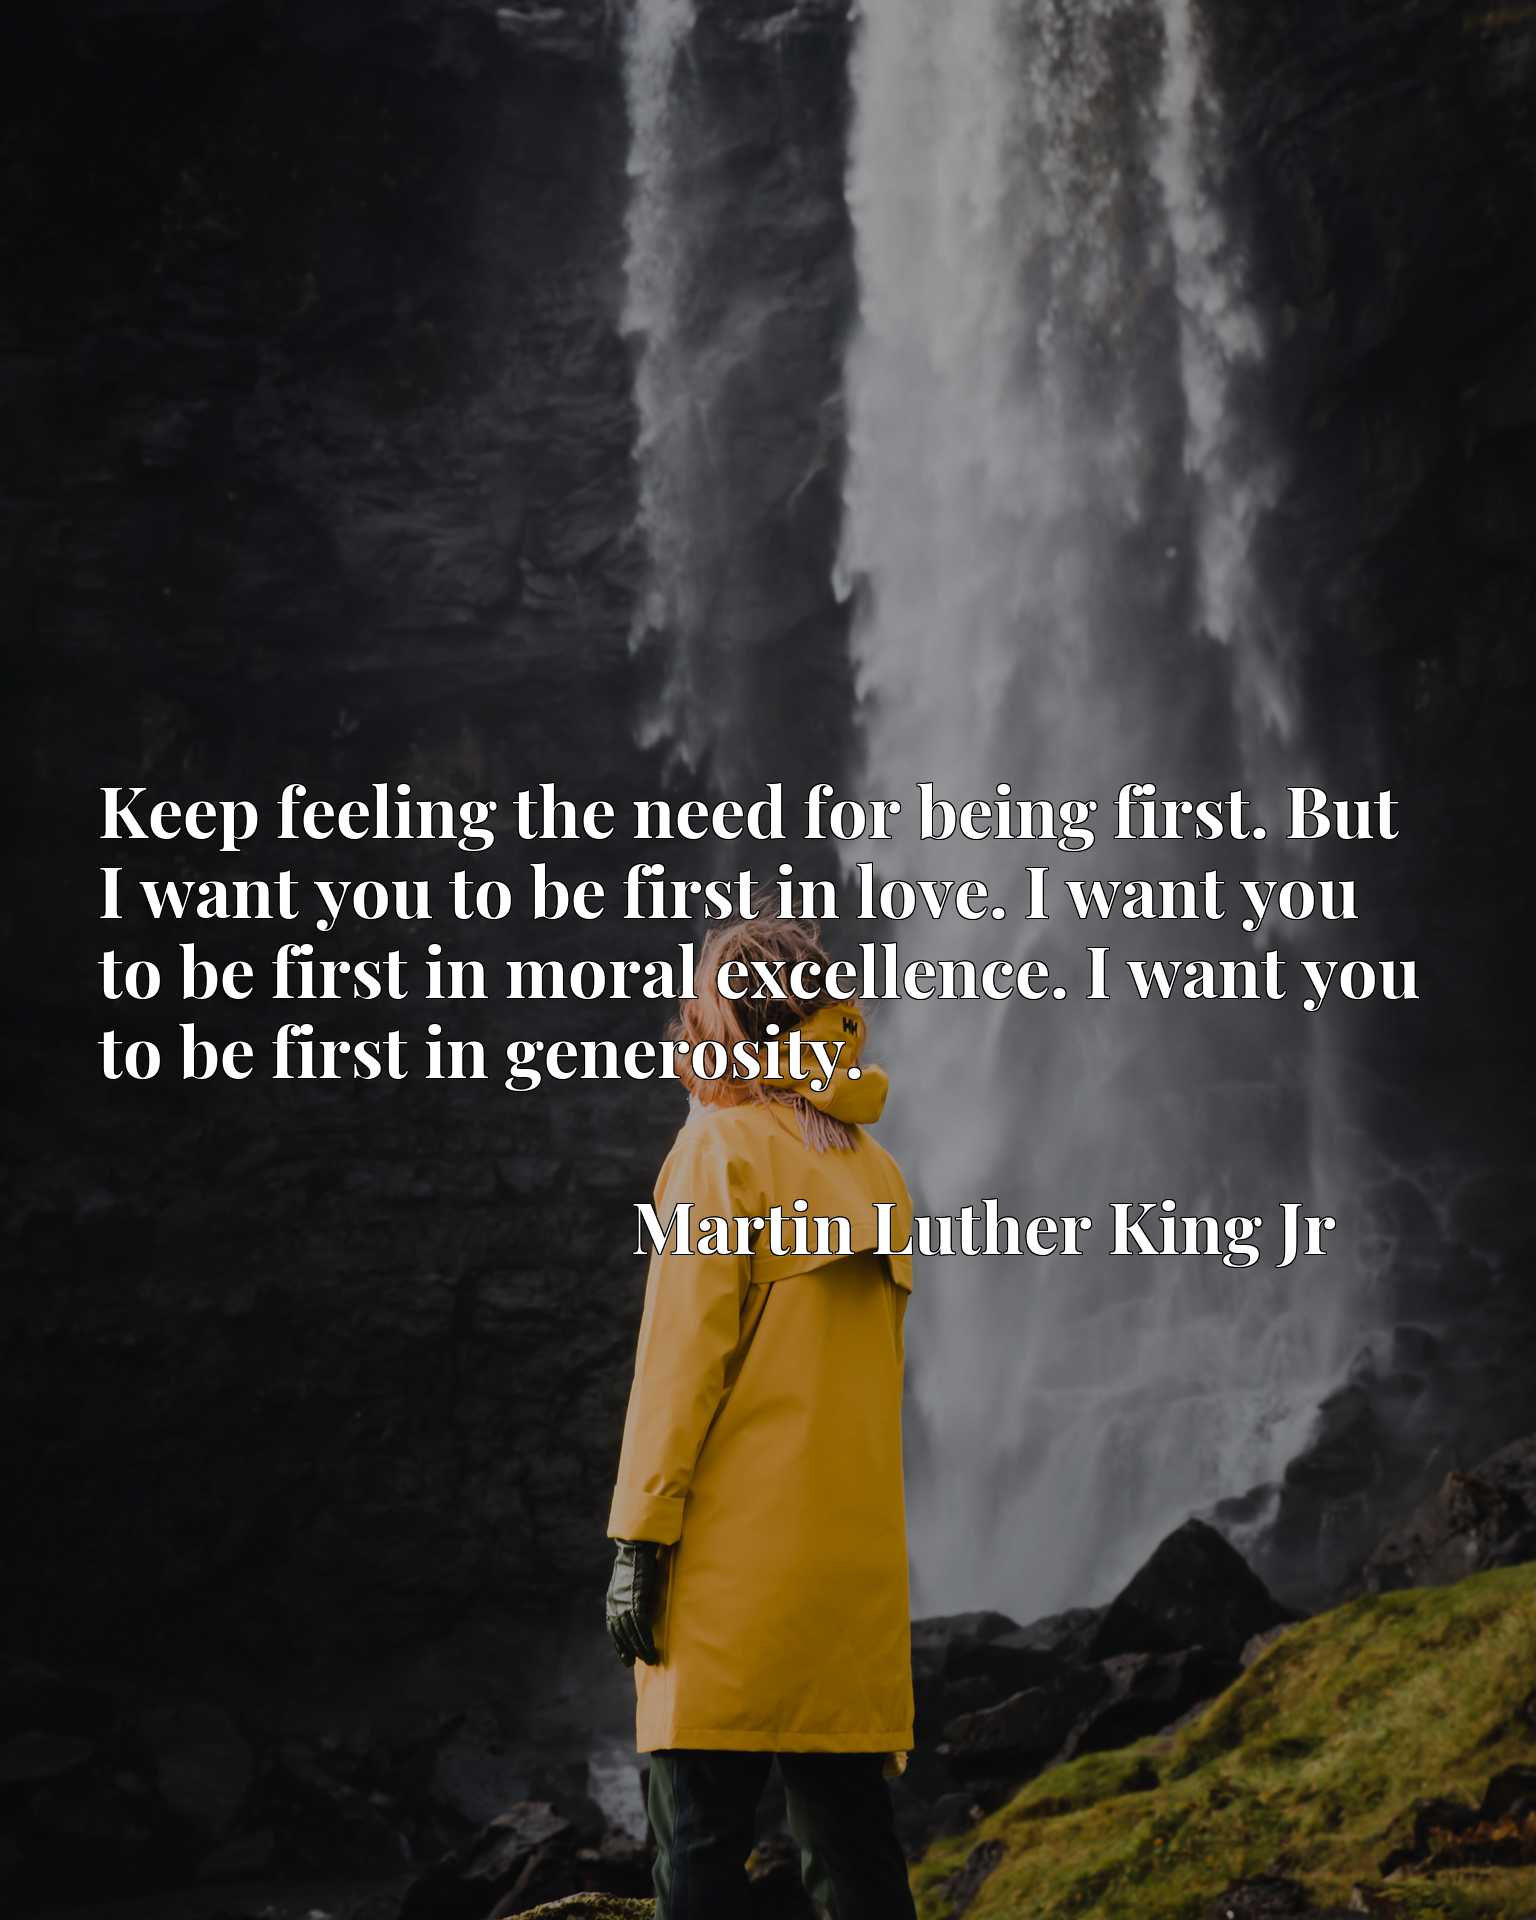 Keep feeling the need for being first. But I want you to be first in love. I want you to be first in moral excellence. I want you to be first in generosity.